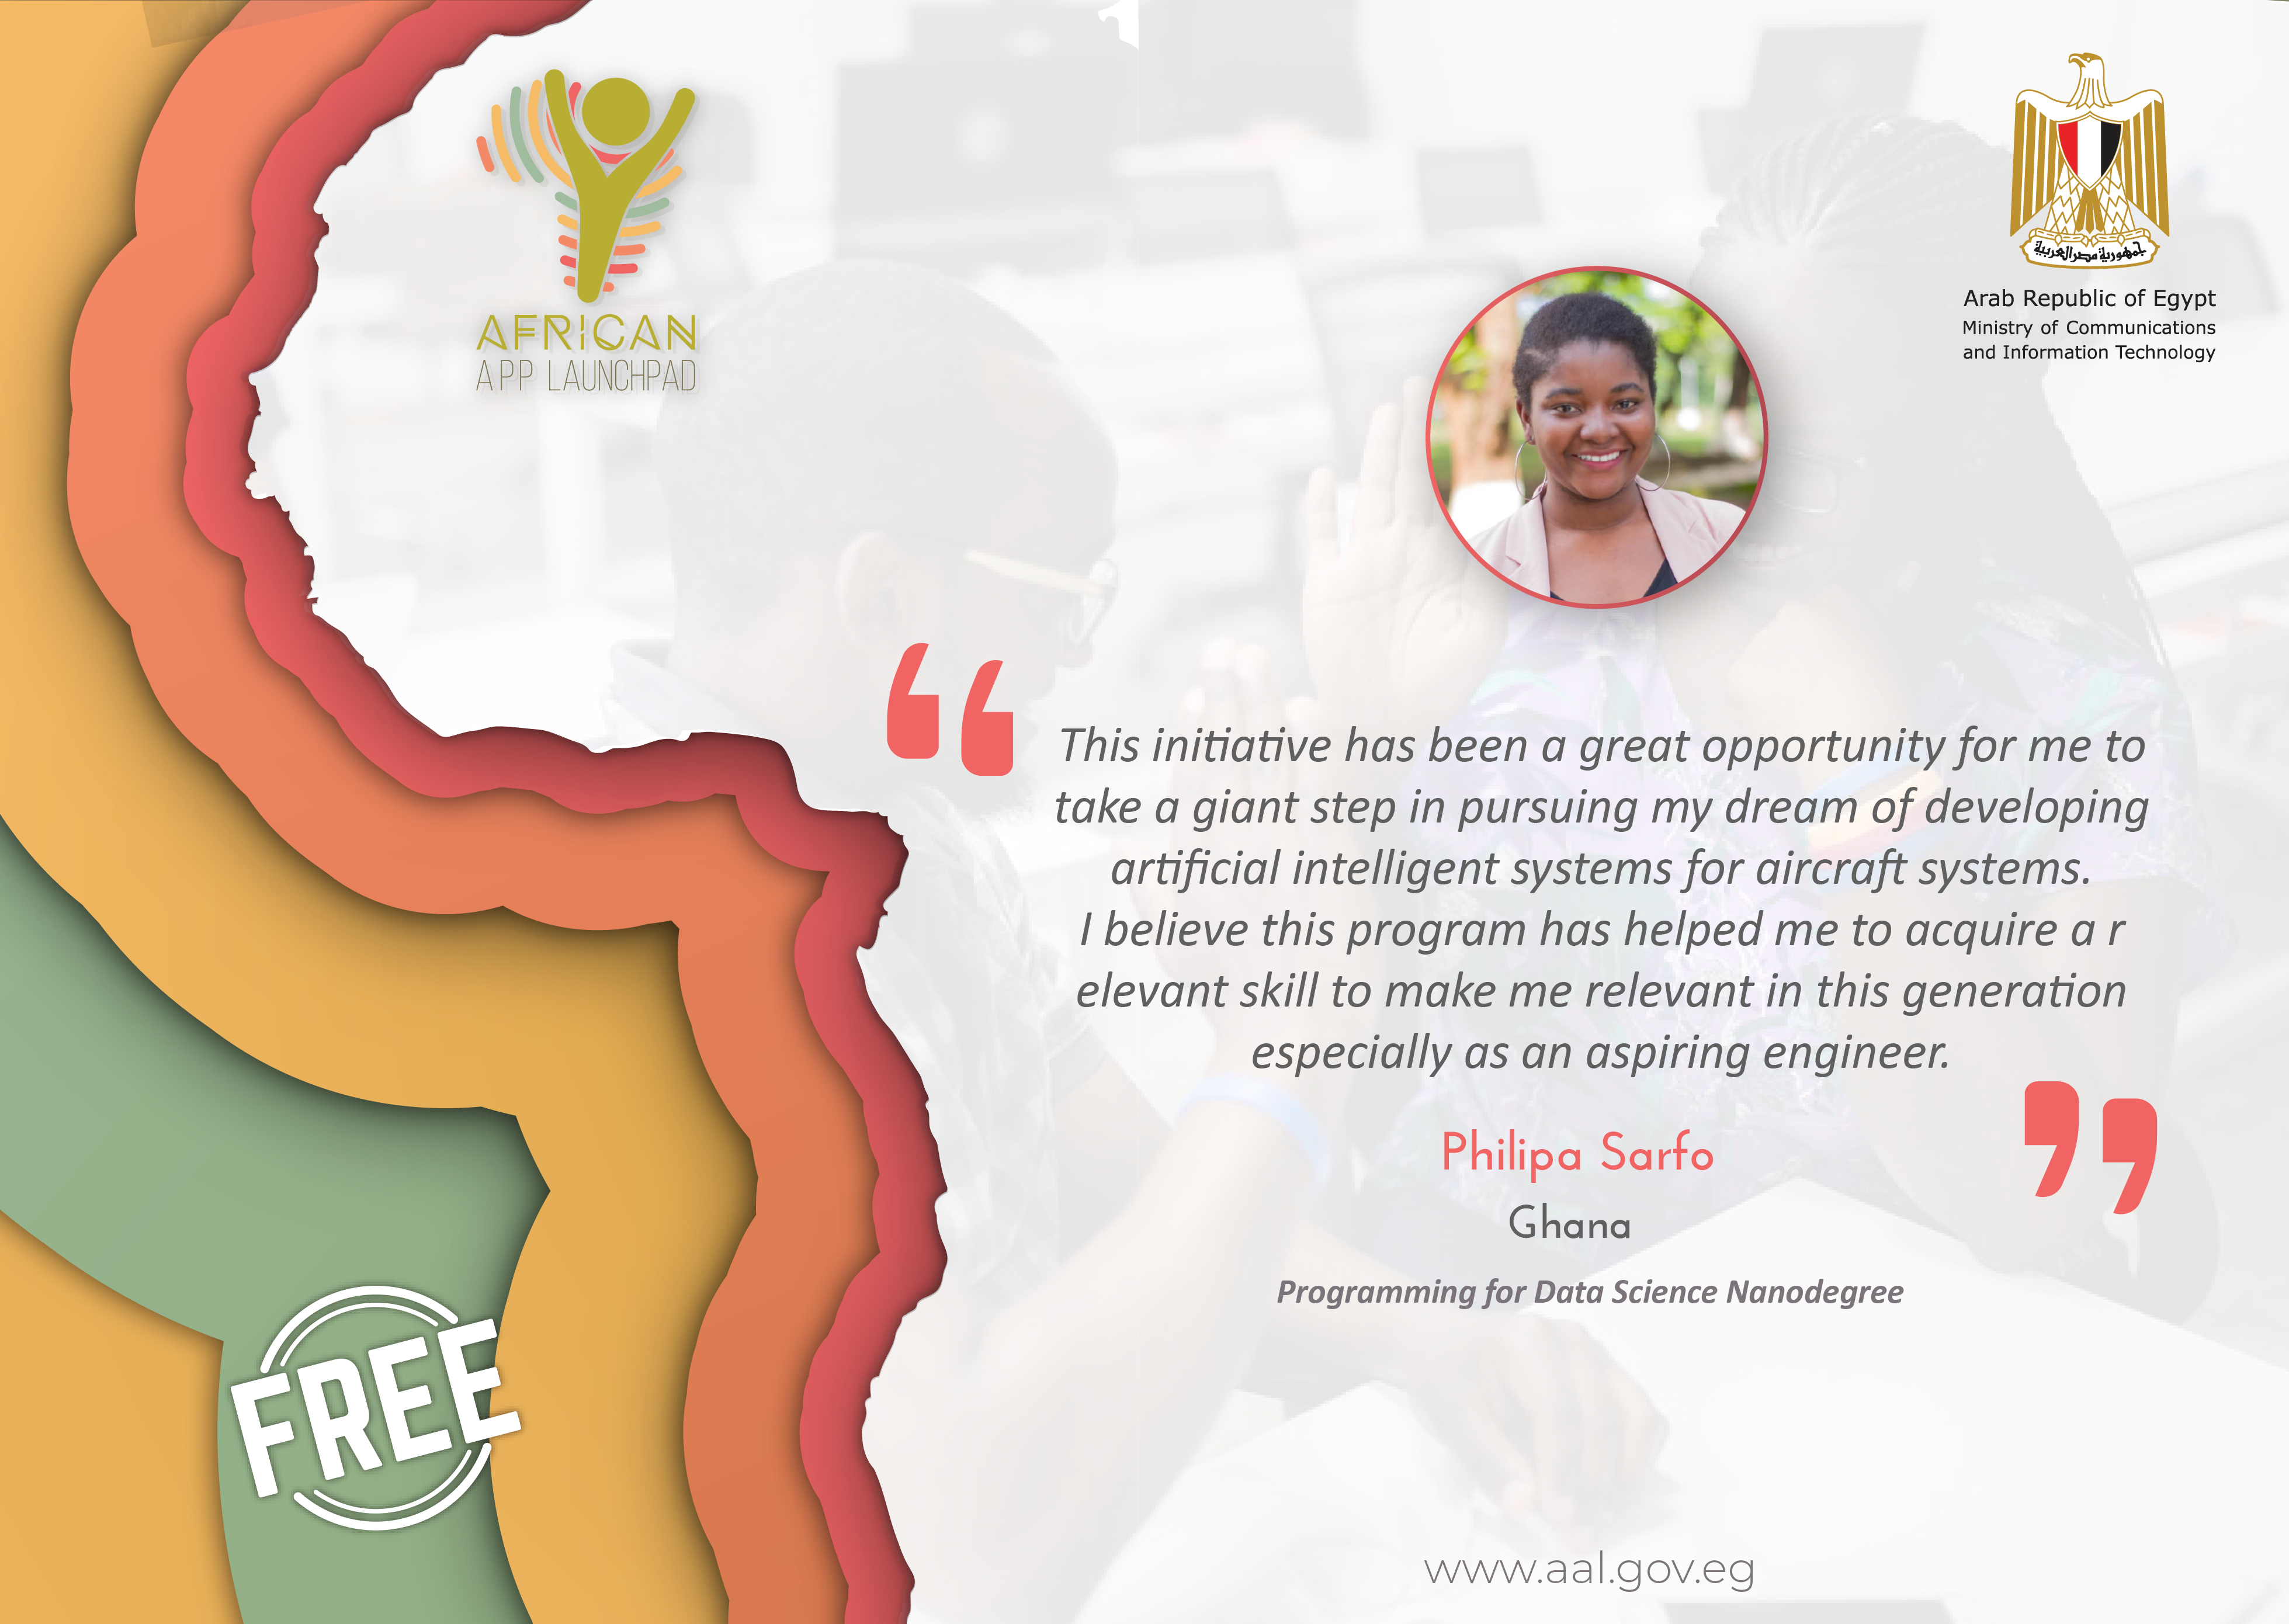 AAL AI Programming with Python Nanodegree Graduate's Testimonial from Ghana.